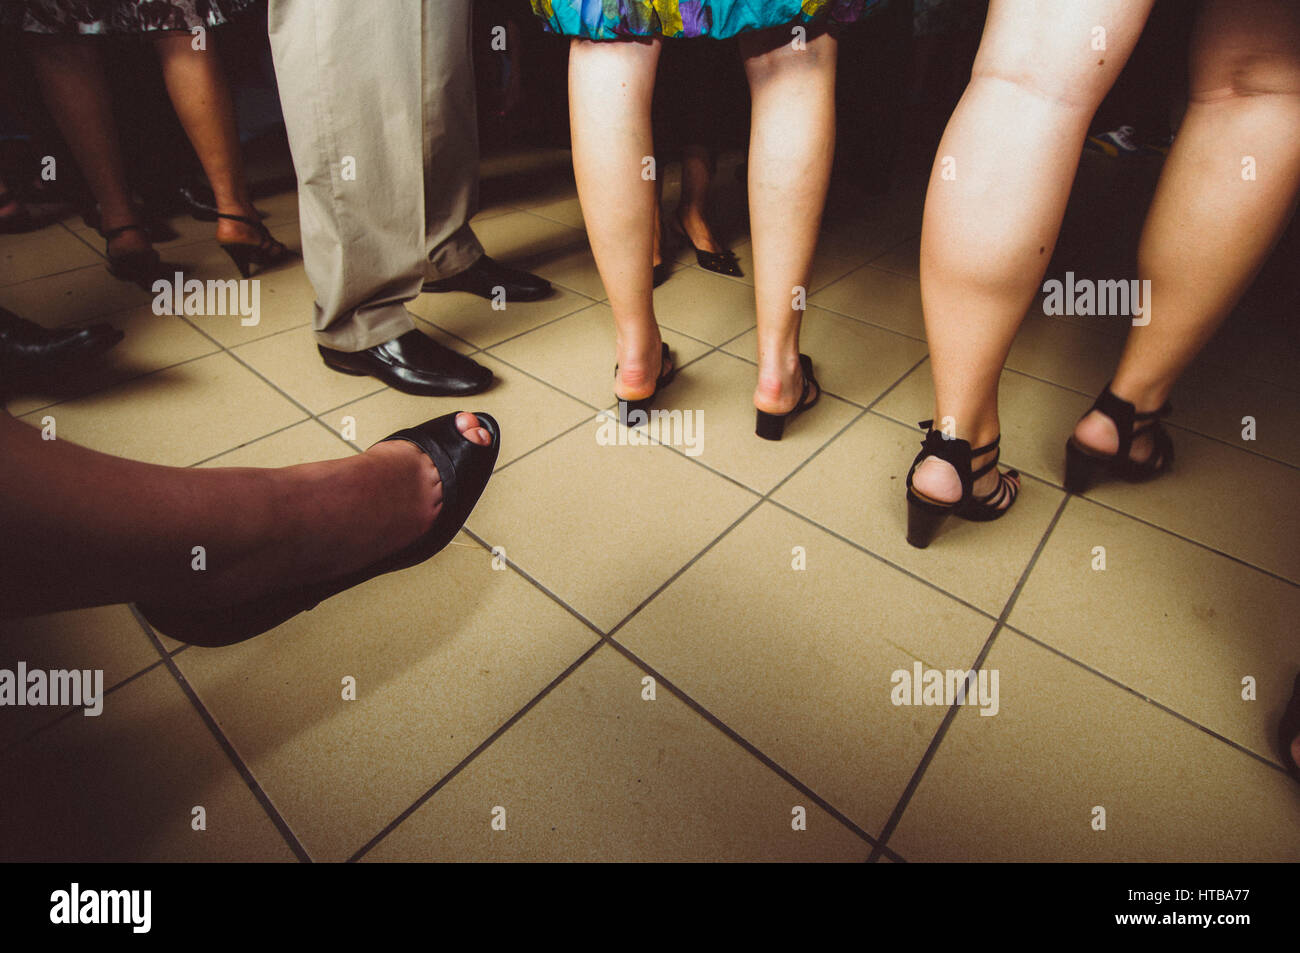 Group of people, detail legs - Stock Image